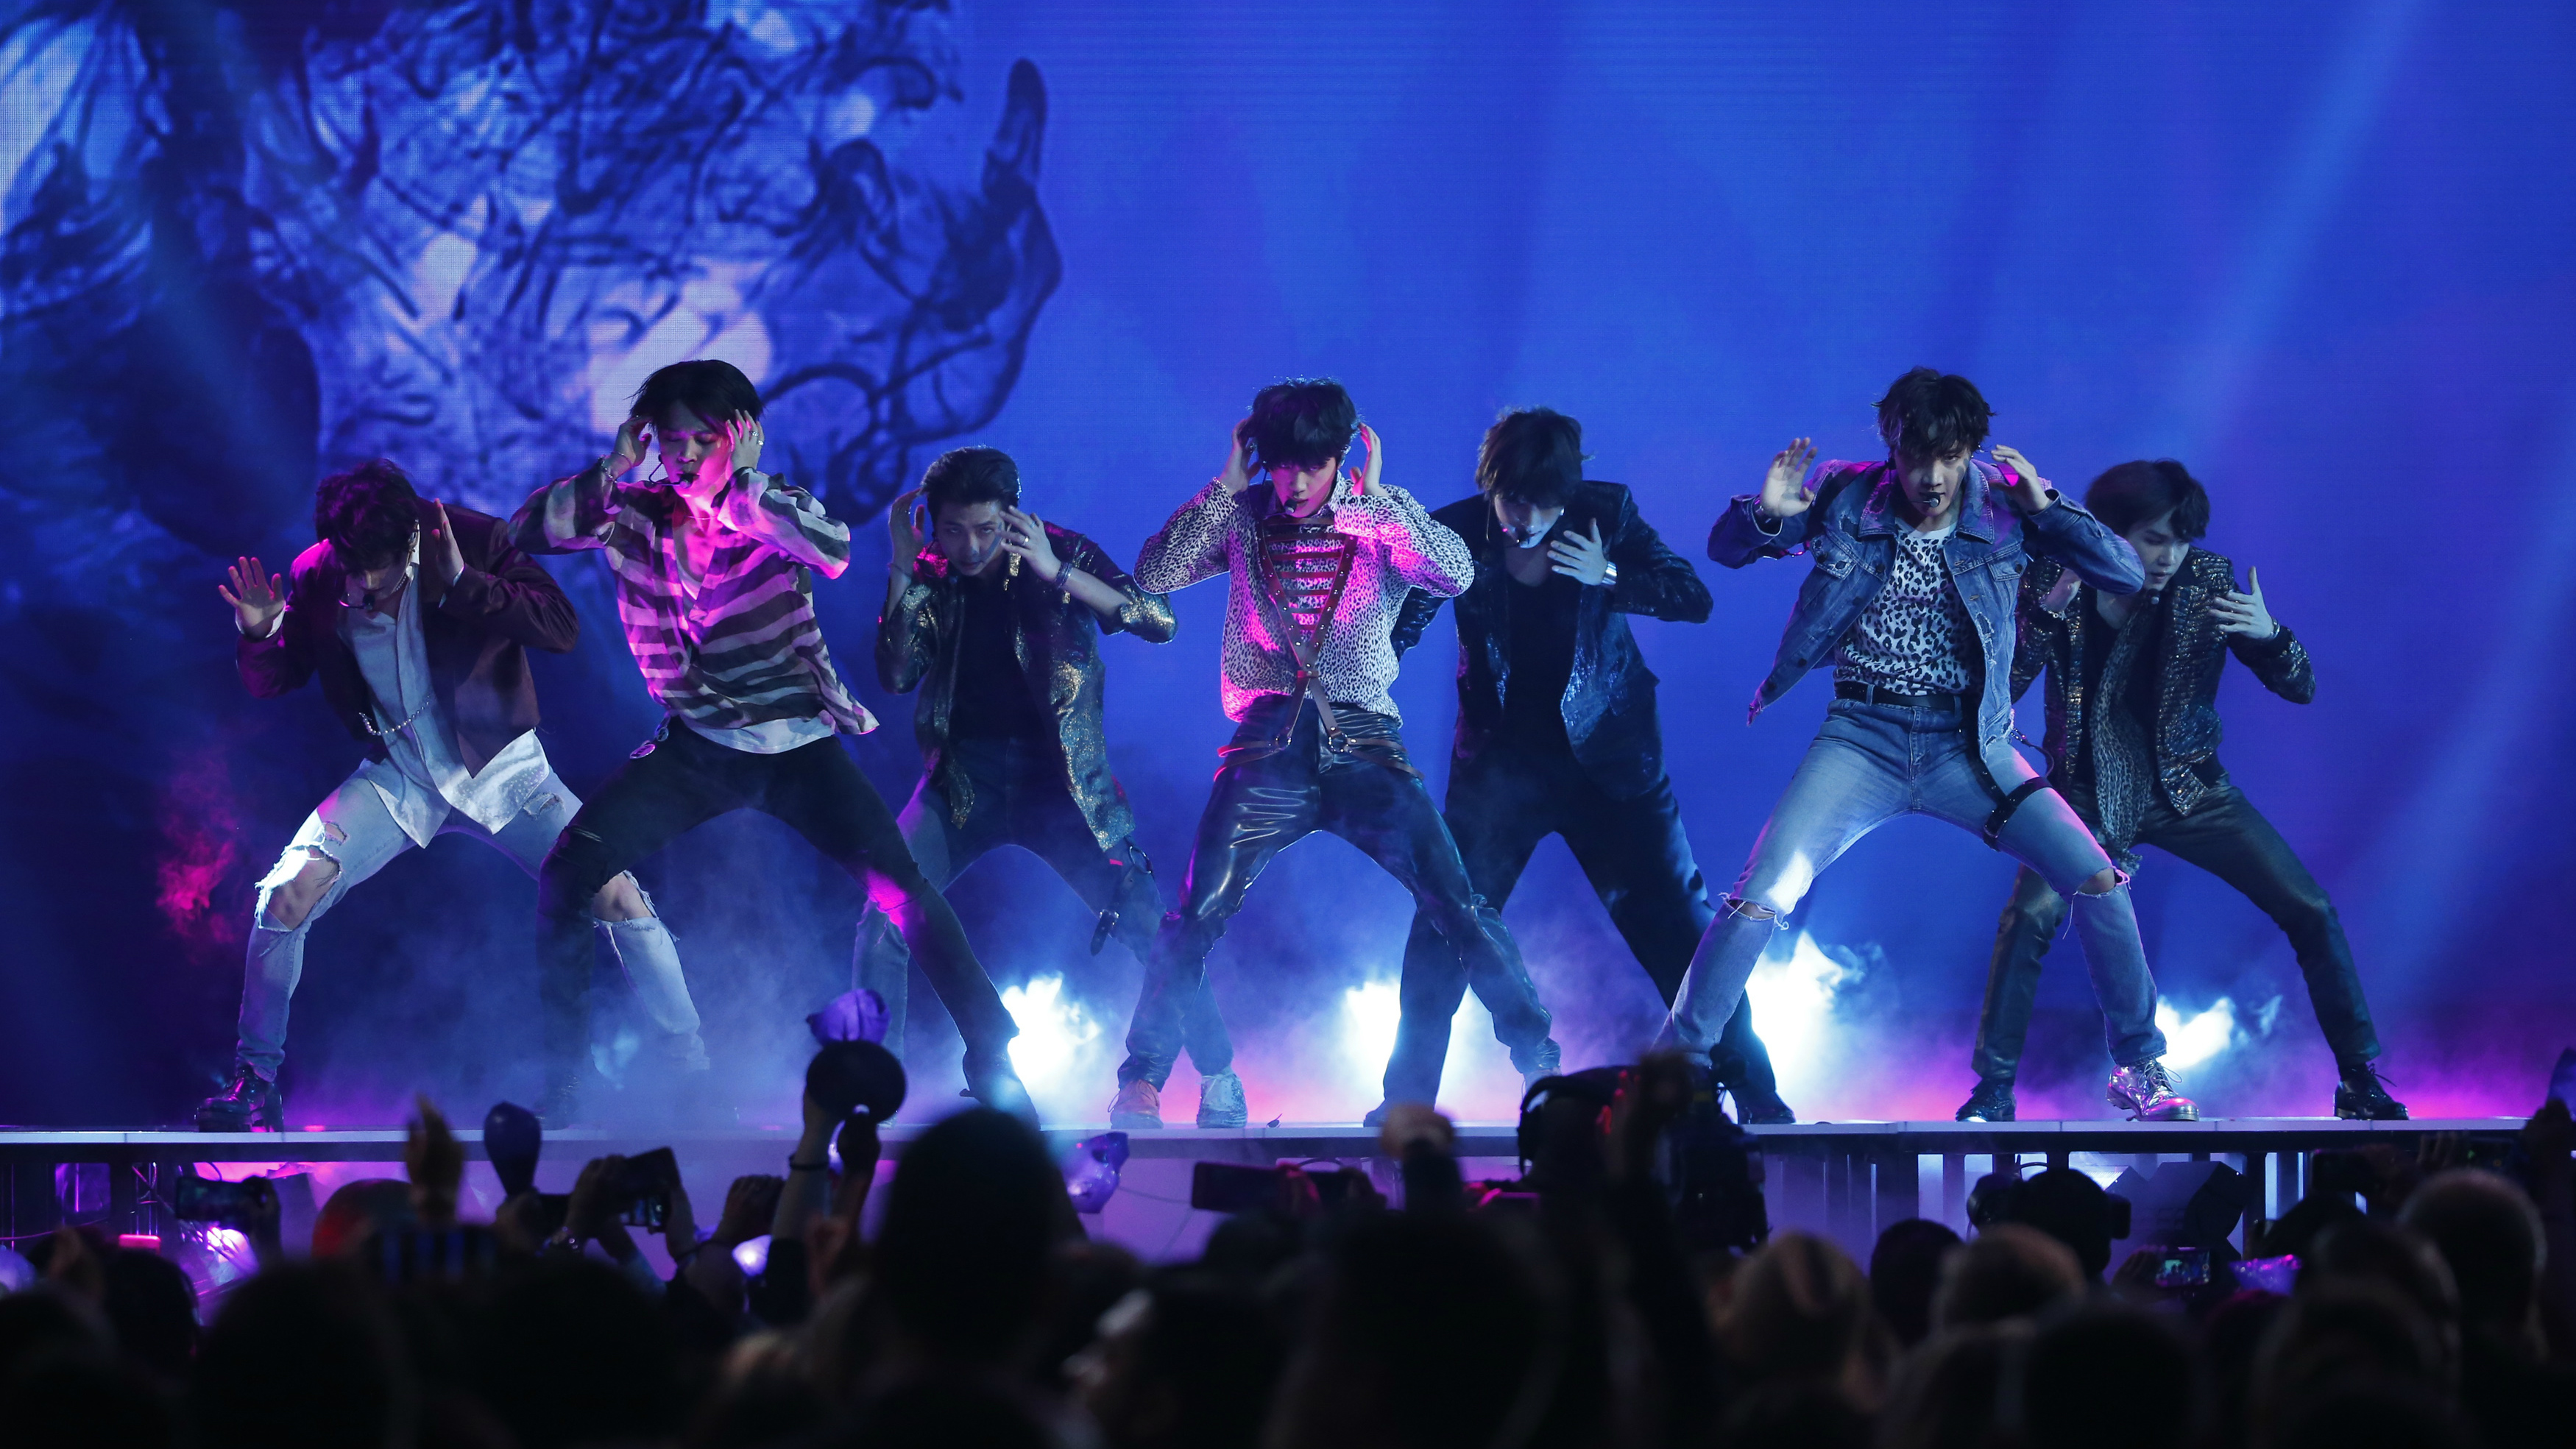 BTS's new album, Map of the Soul: Persona, is a joyful listen — Quartzy